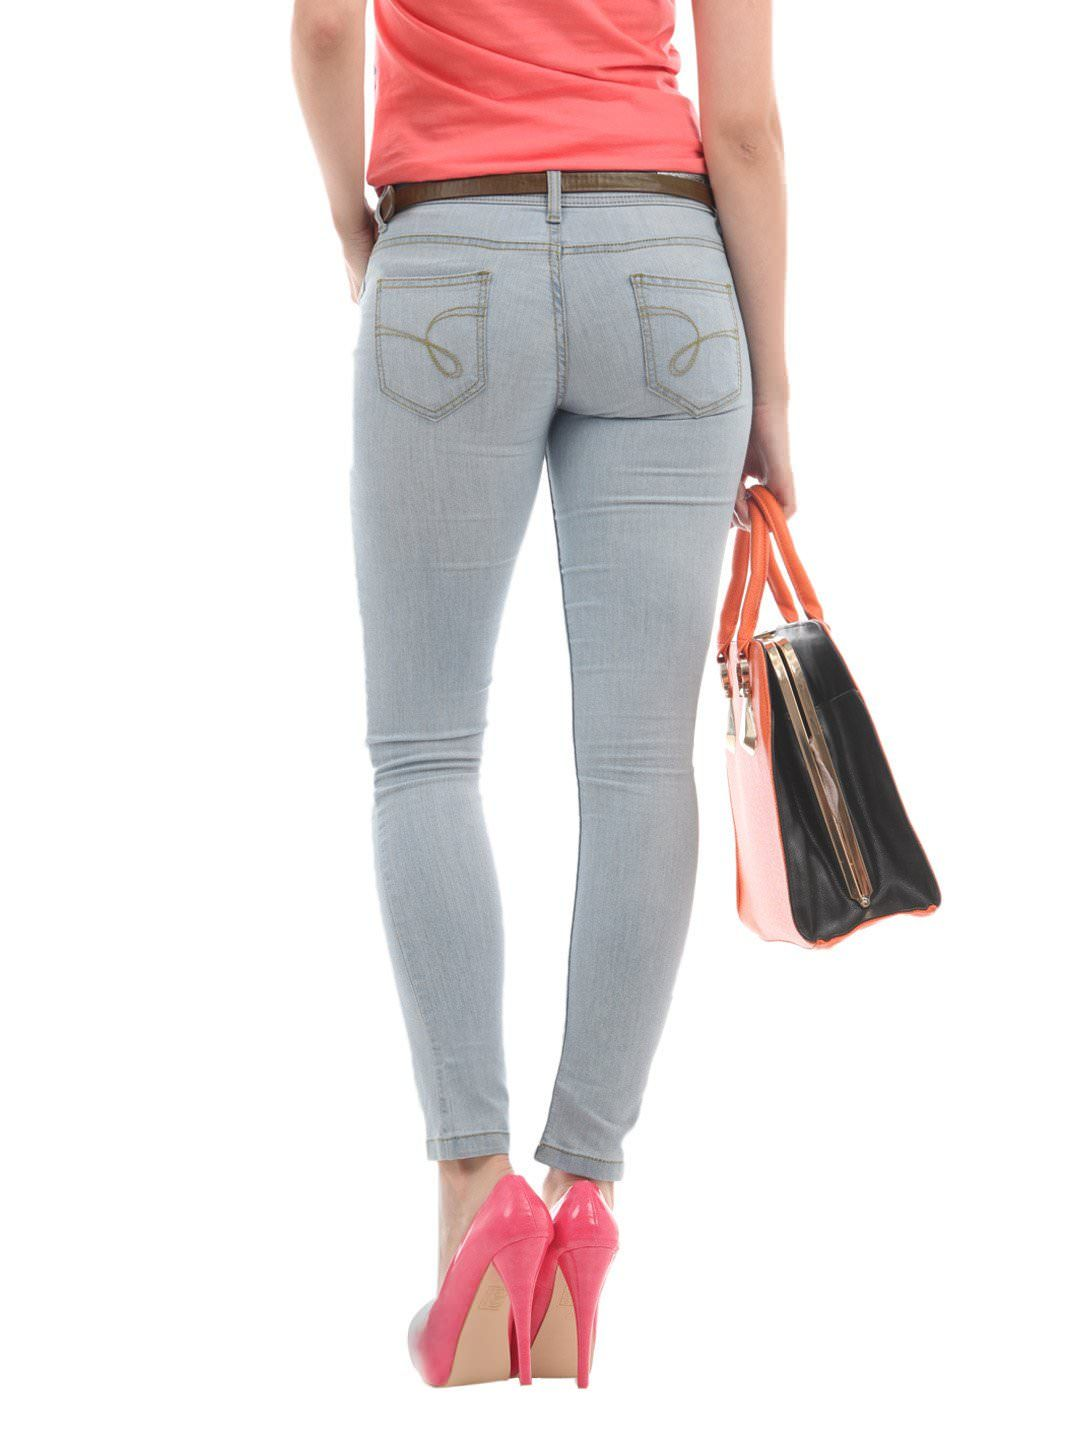 Light Blue Jeans For Women. Sky blue jeans for women light ...